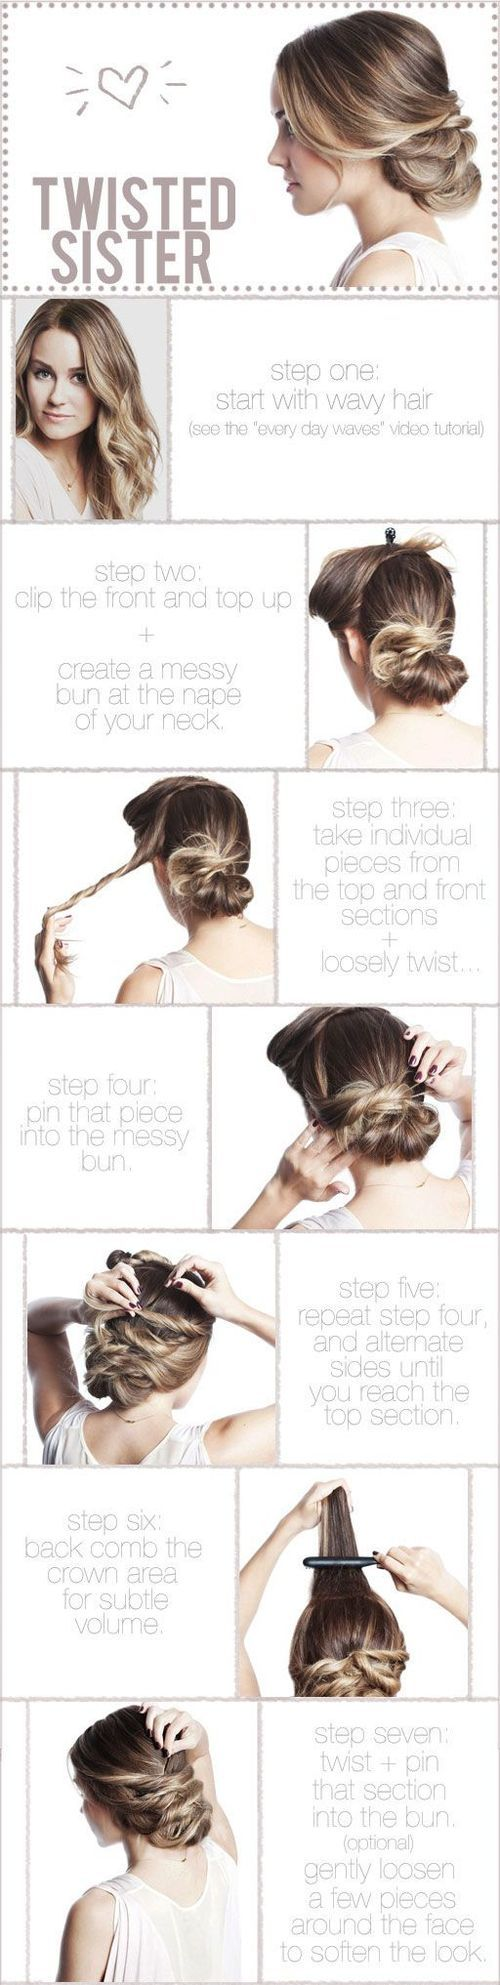 DIY Twisted Sister Hairstyle Do It Yourself Fashion Tips / DIY Fashion Projects on imgfave